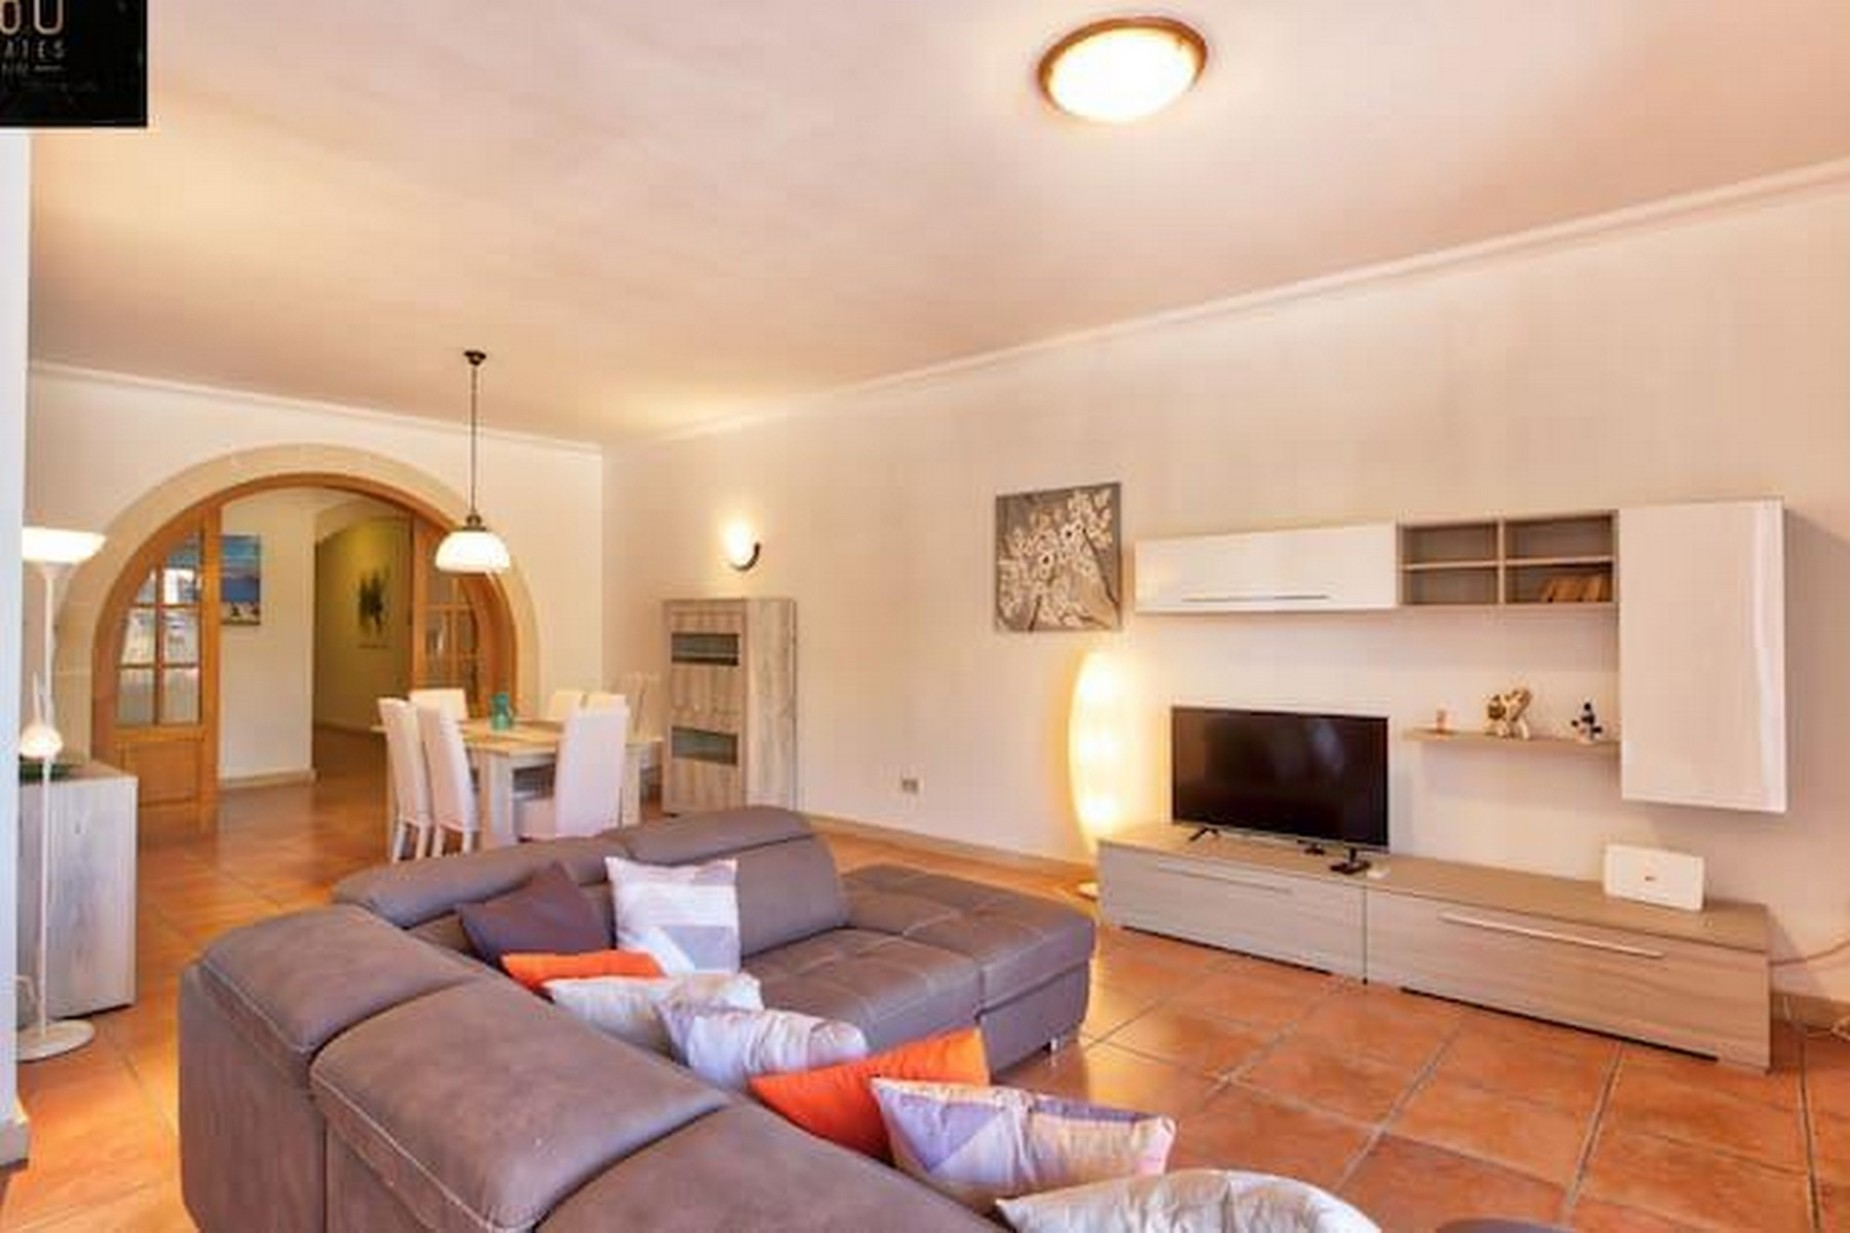 4 bed Apartment For Rent in St Julian's, St Julian's - thumb 3